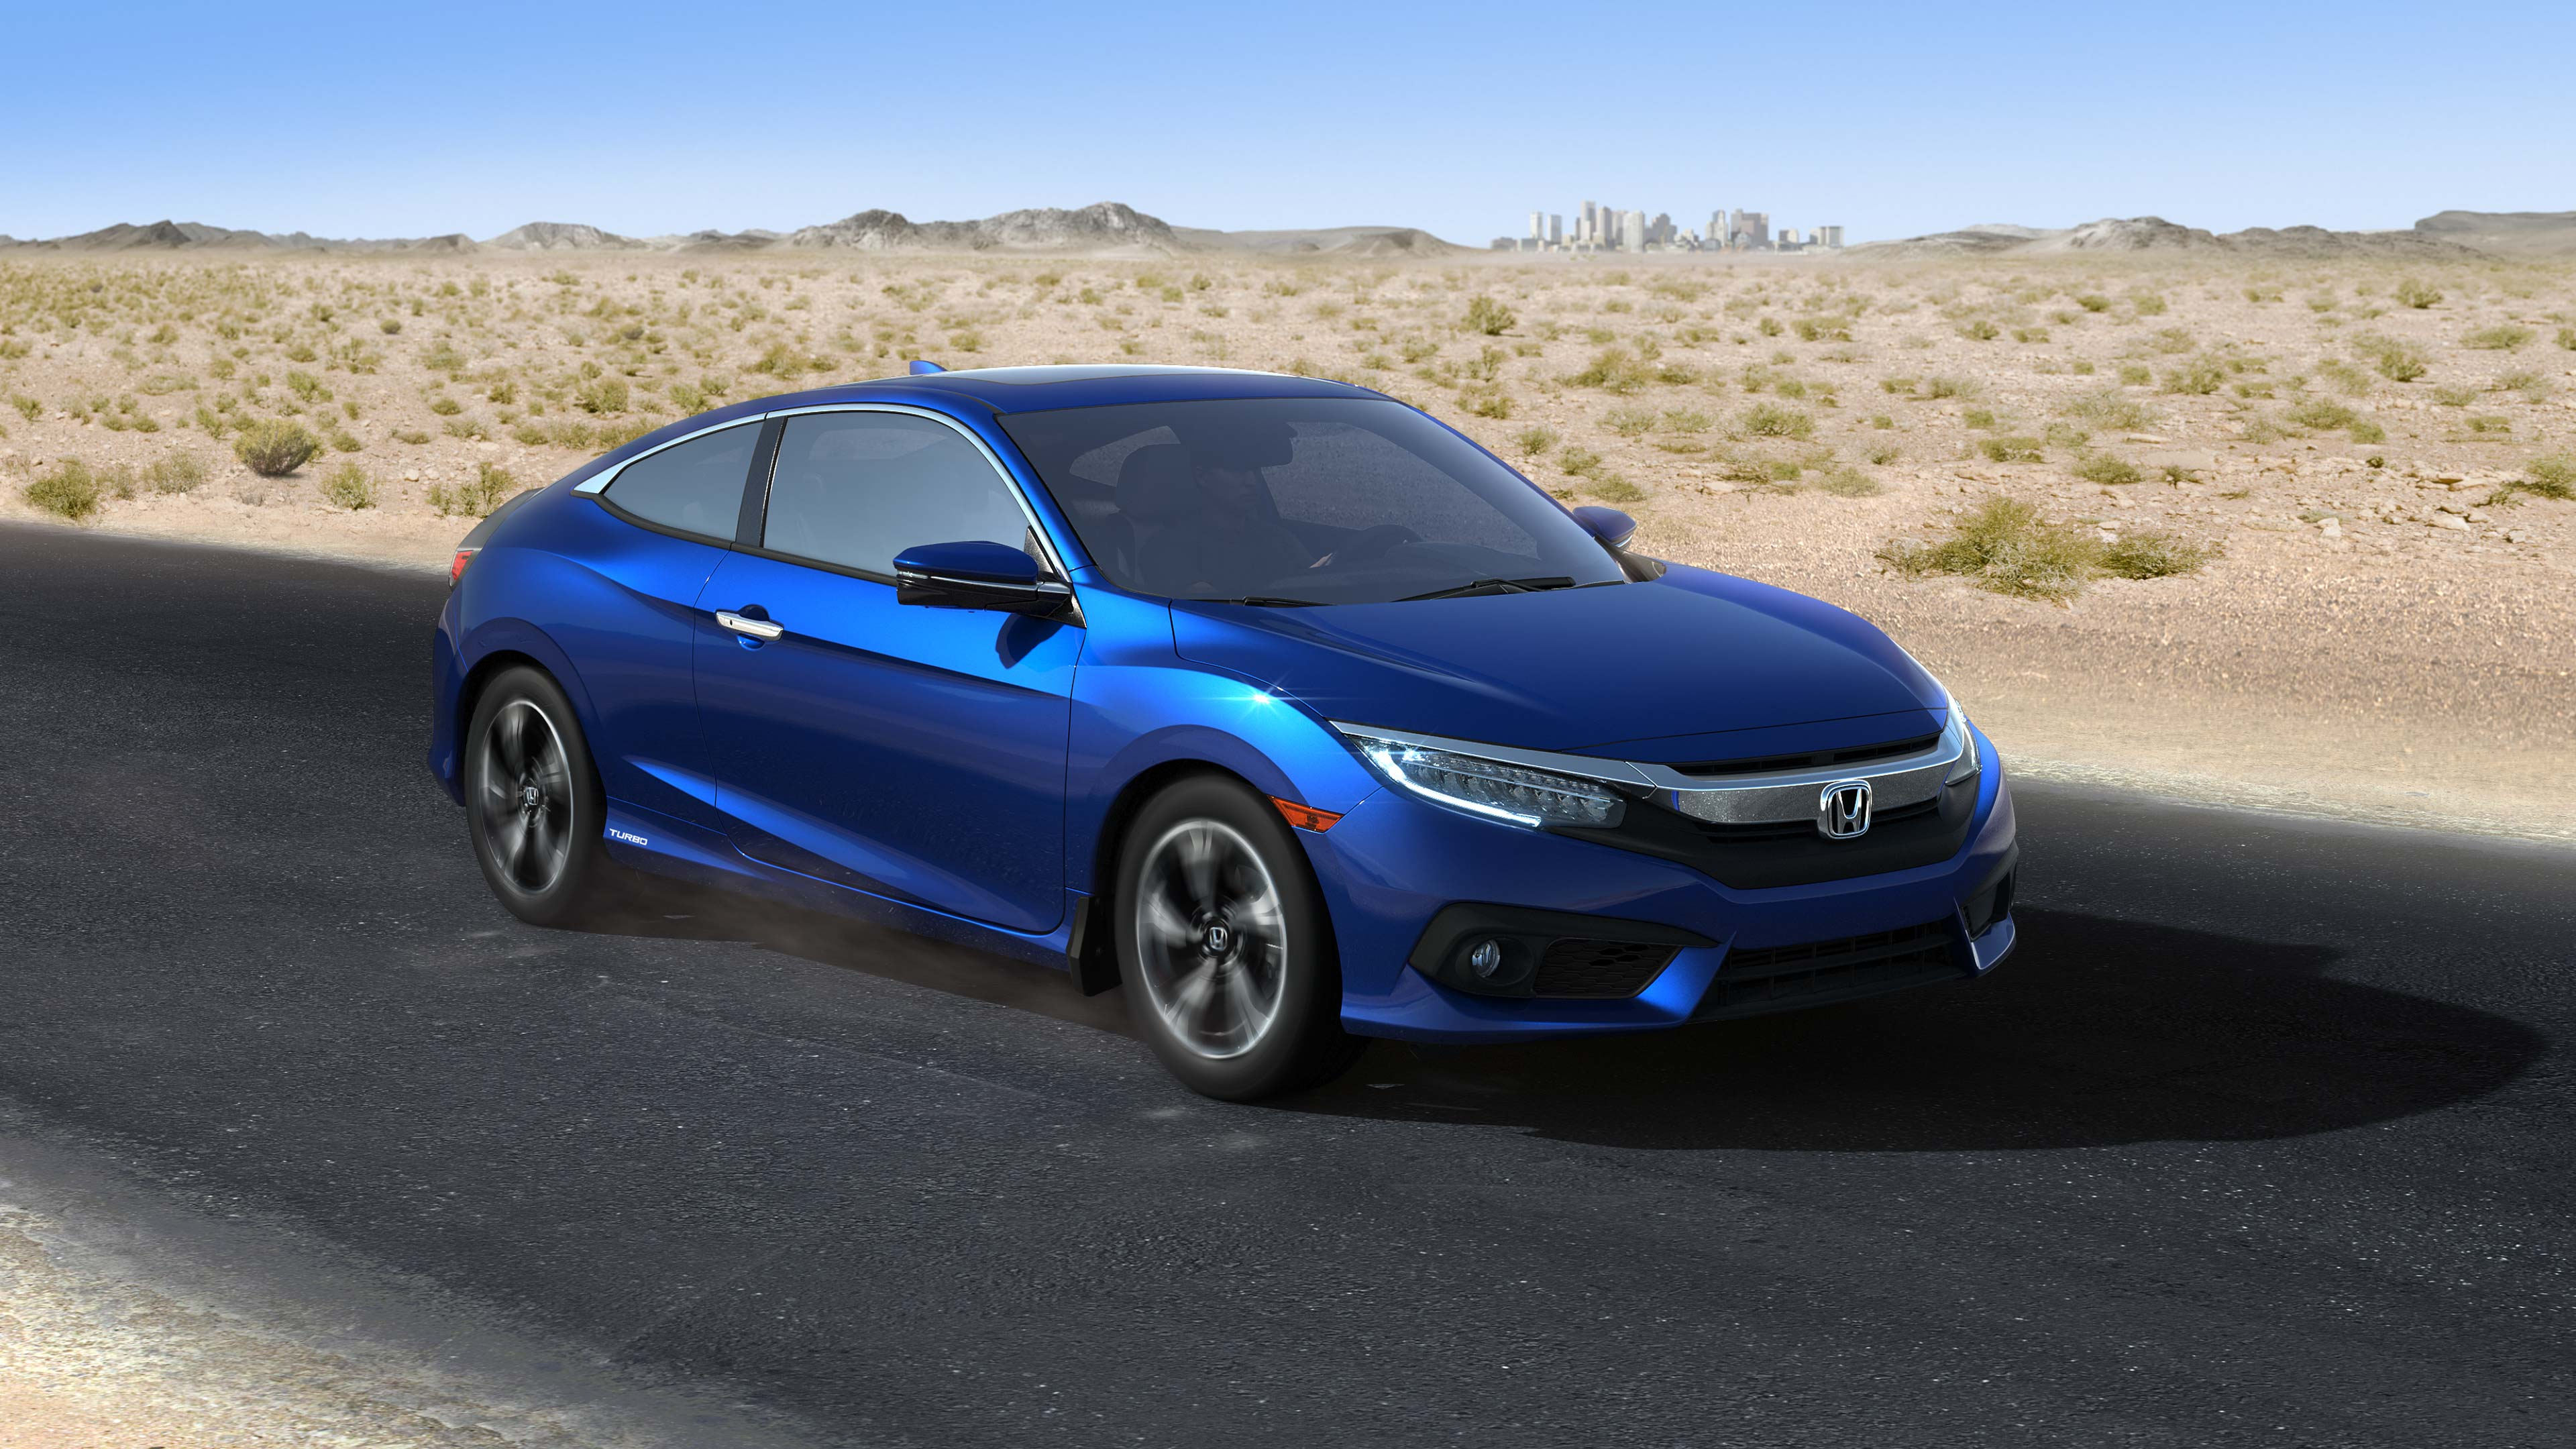 2016 honda civic coupe for sale at marv jones honda maple ridge. Black Bedroom Furniture Sets. Home Design Ideas